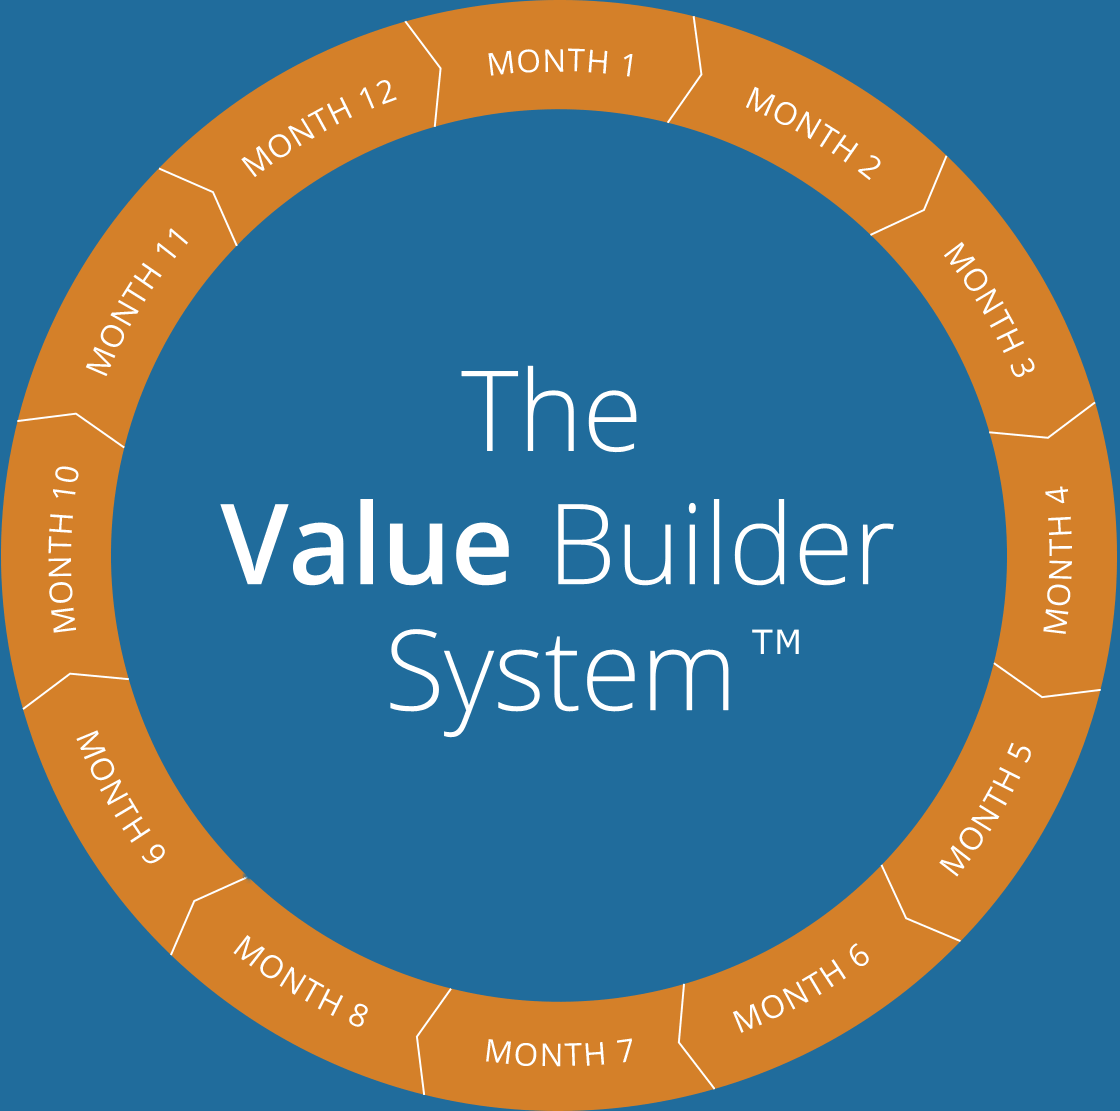 What Can You Discover About Your Value Builder Score?